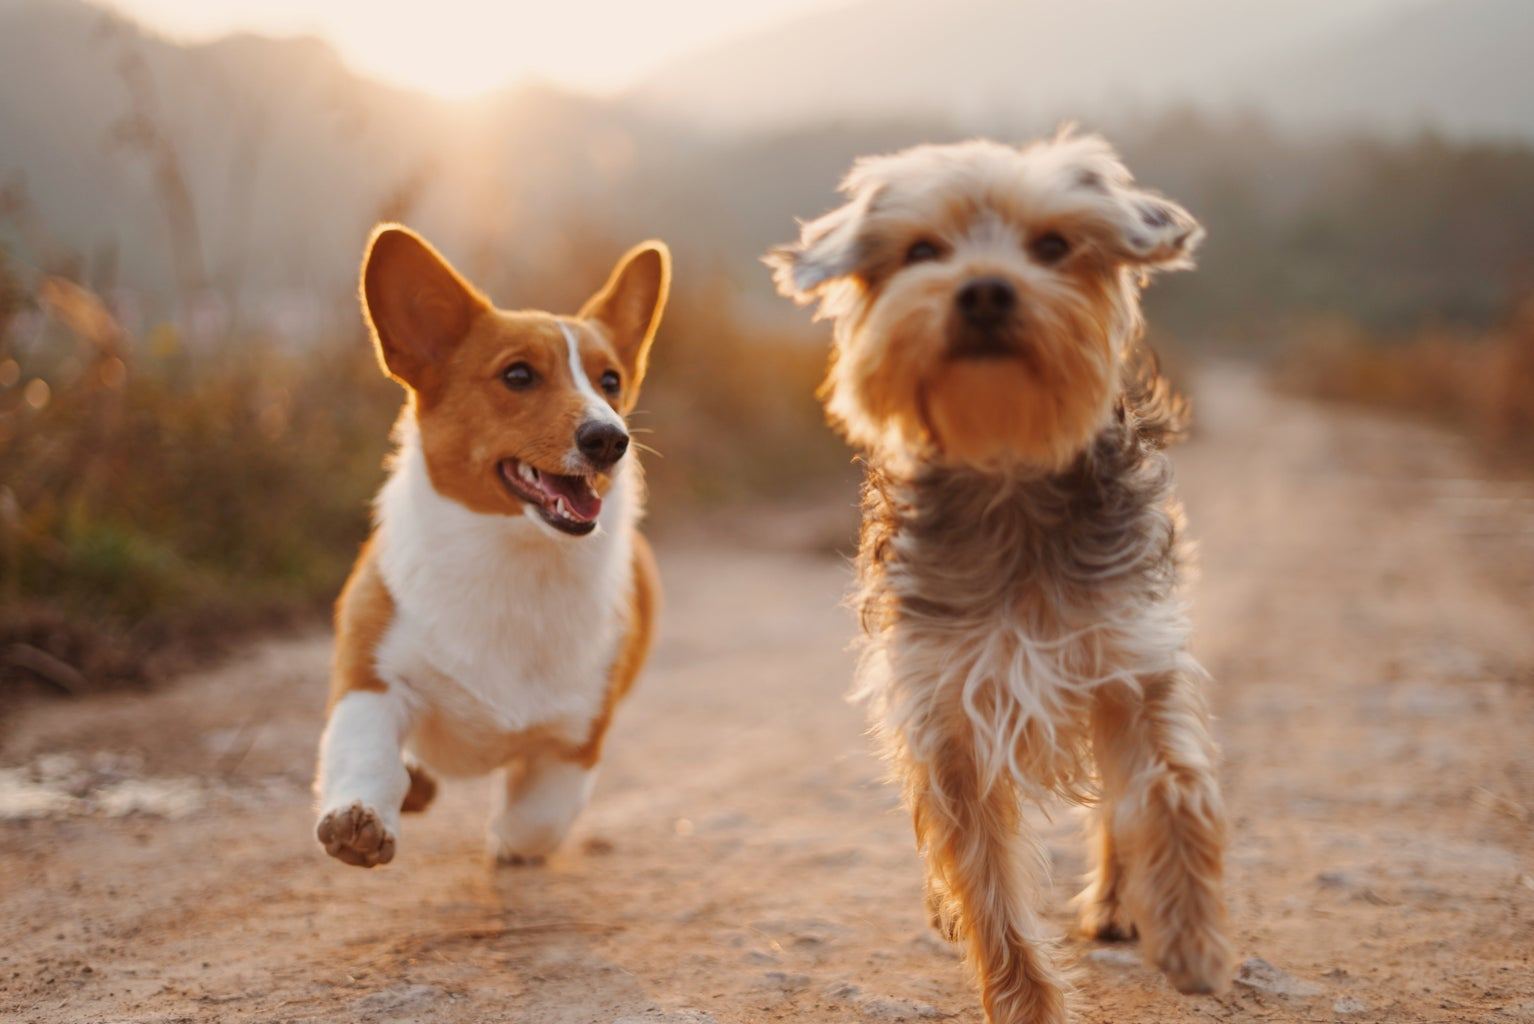 two dogs running at sunset in a field